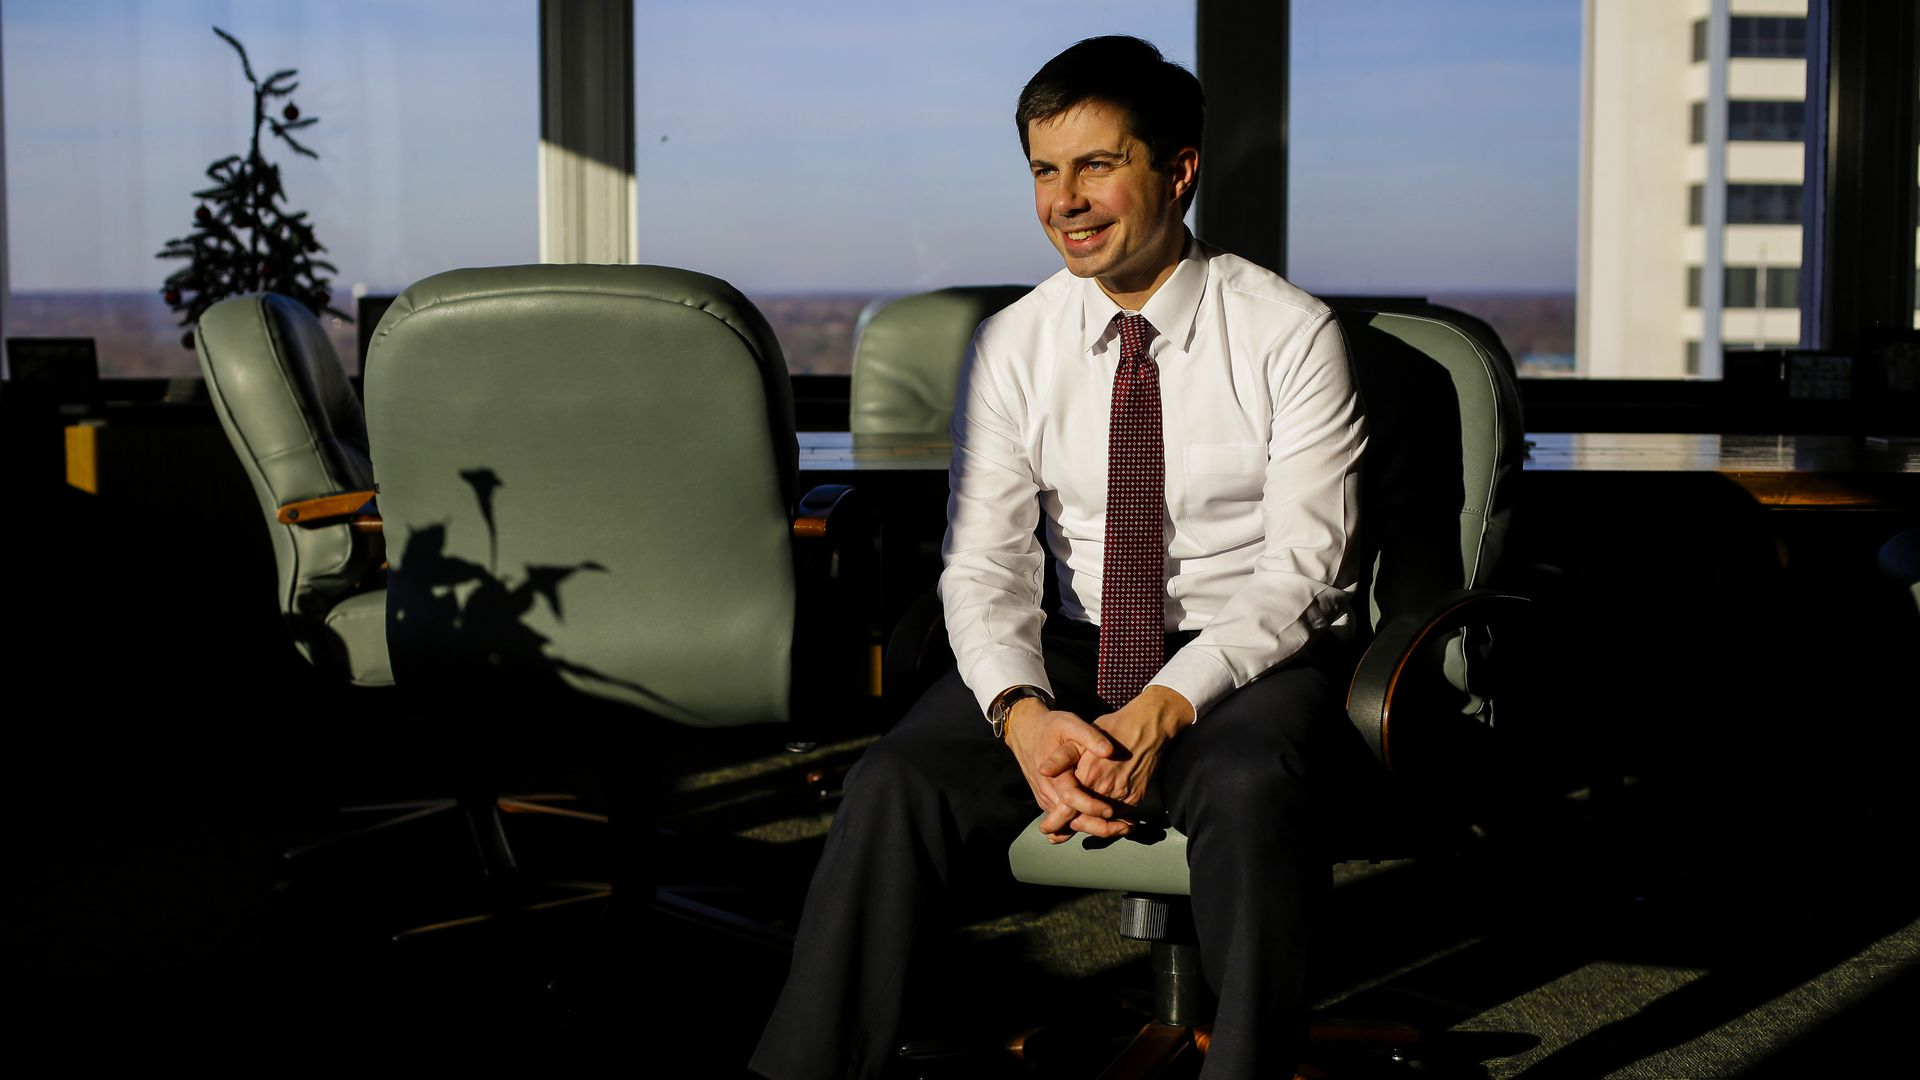 Peter Buttigieg sitting in an office chair